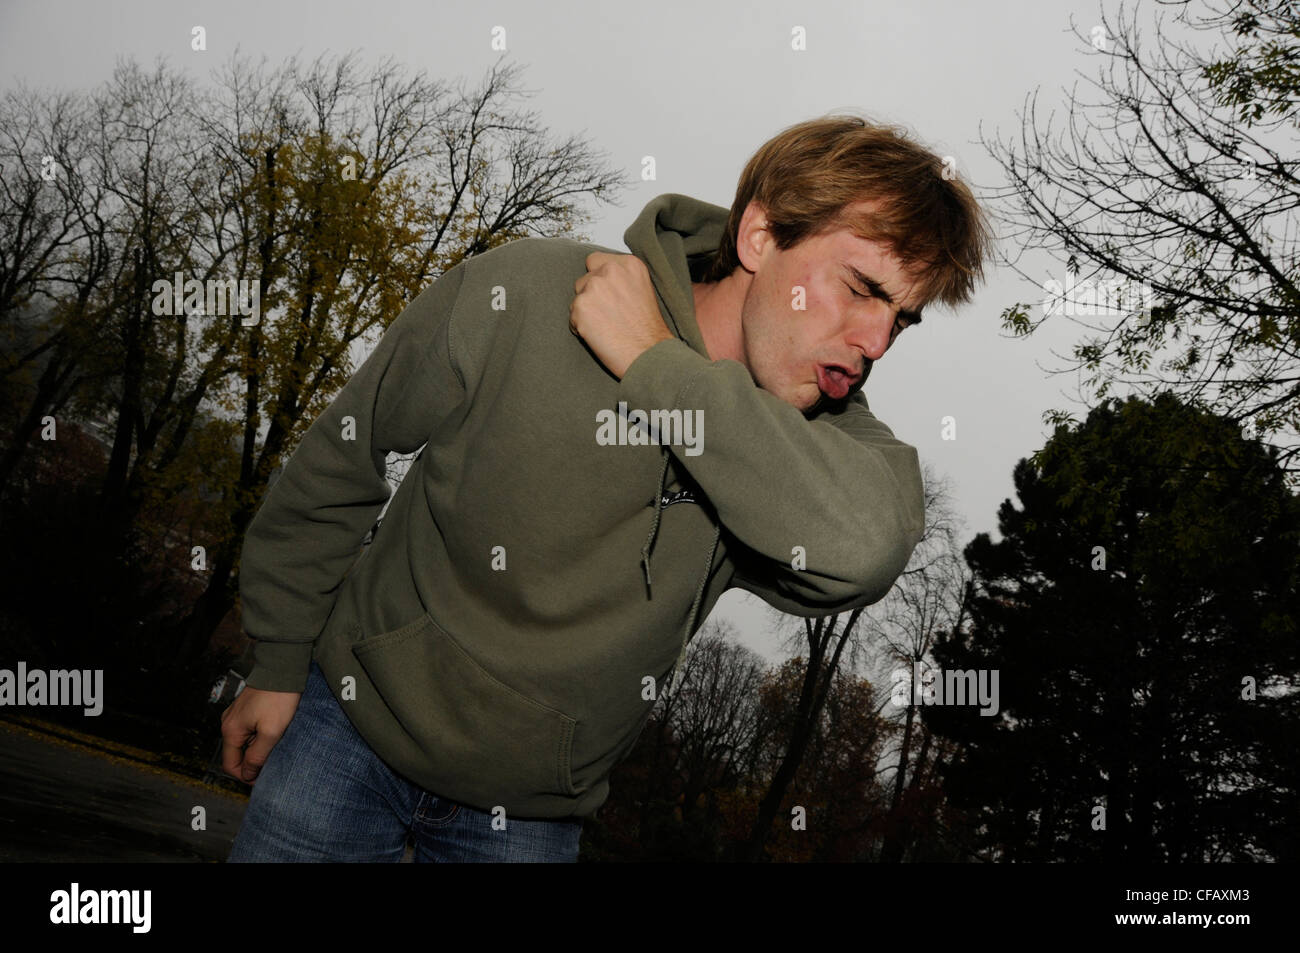 Man, Autumn, fall, gray, cold, ill, sick, cough, winter, coldly, health - Stock Image